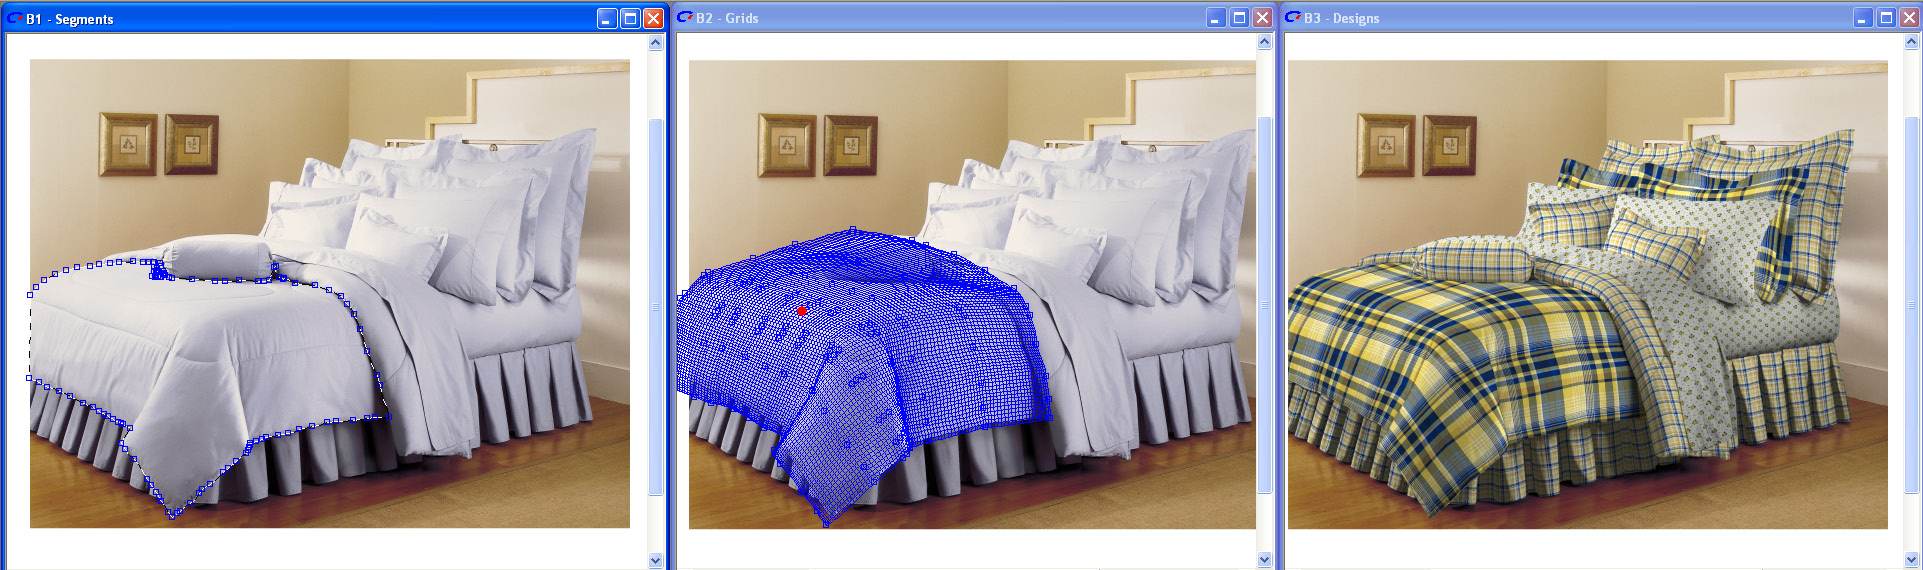 three screen shots of beds showing how easy map pro tools make the draping of the comforters look real